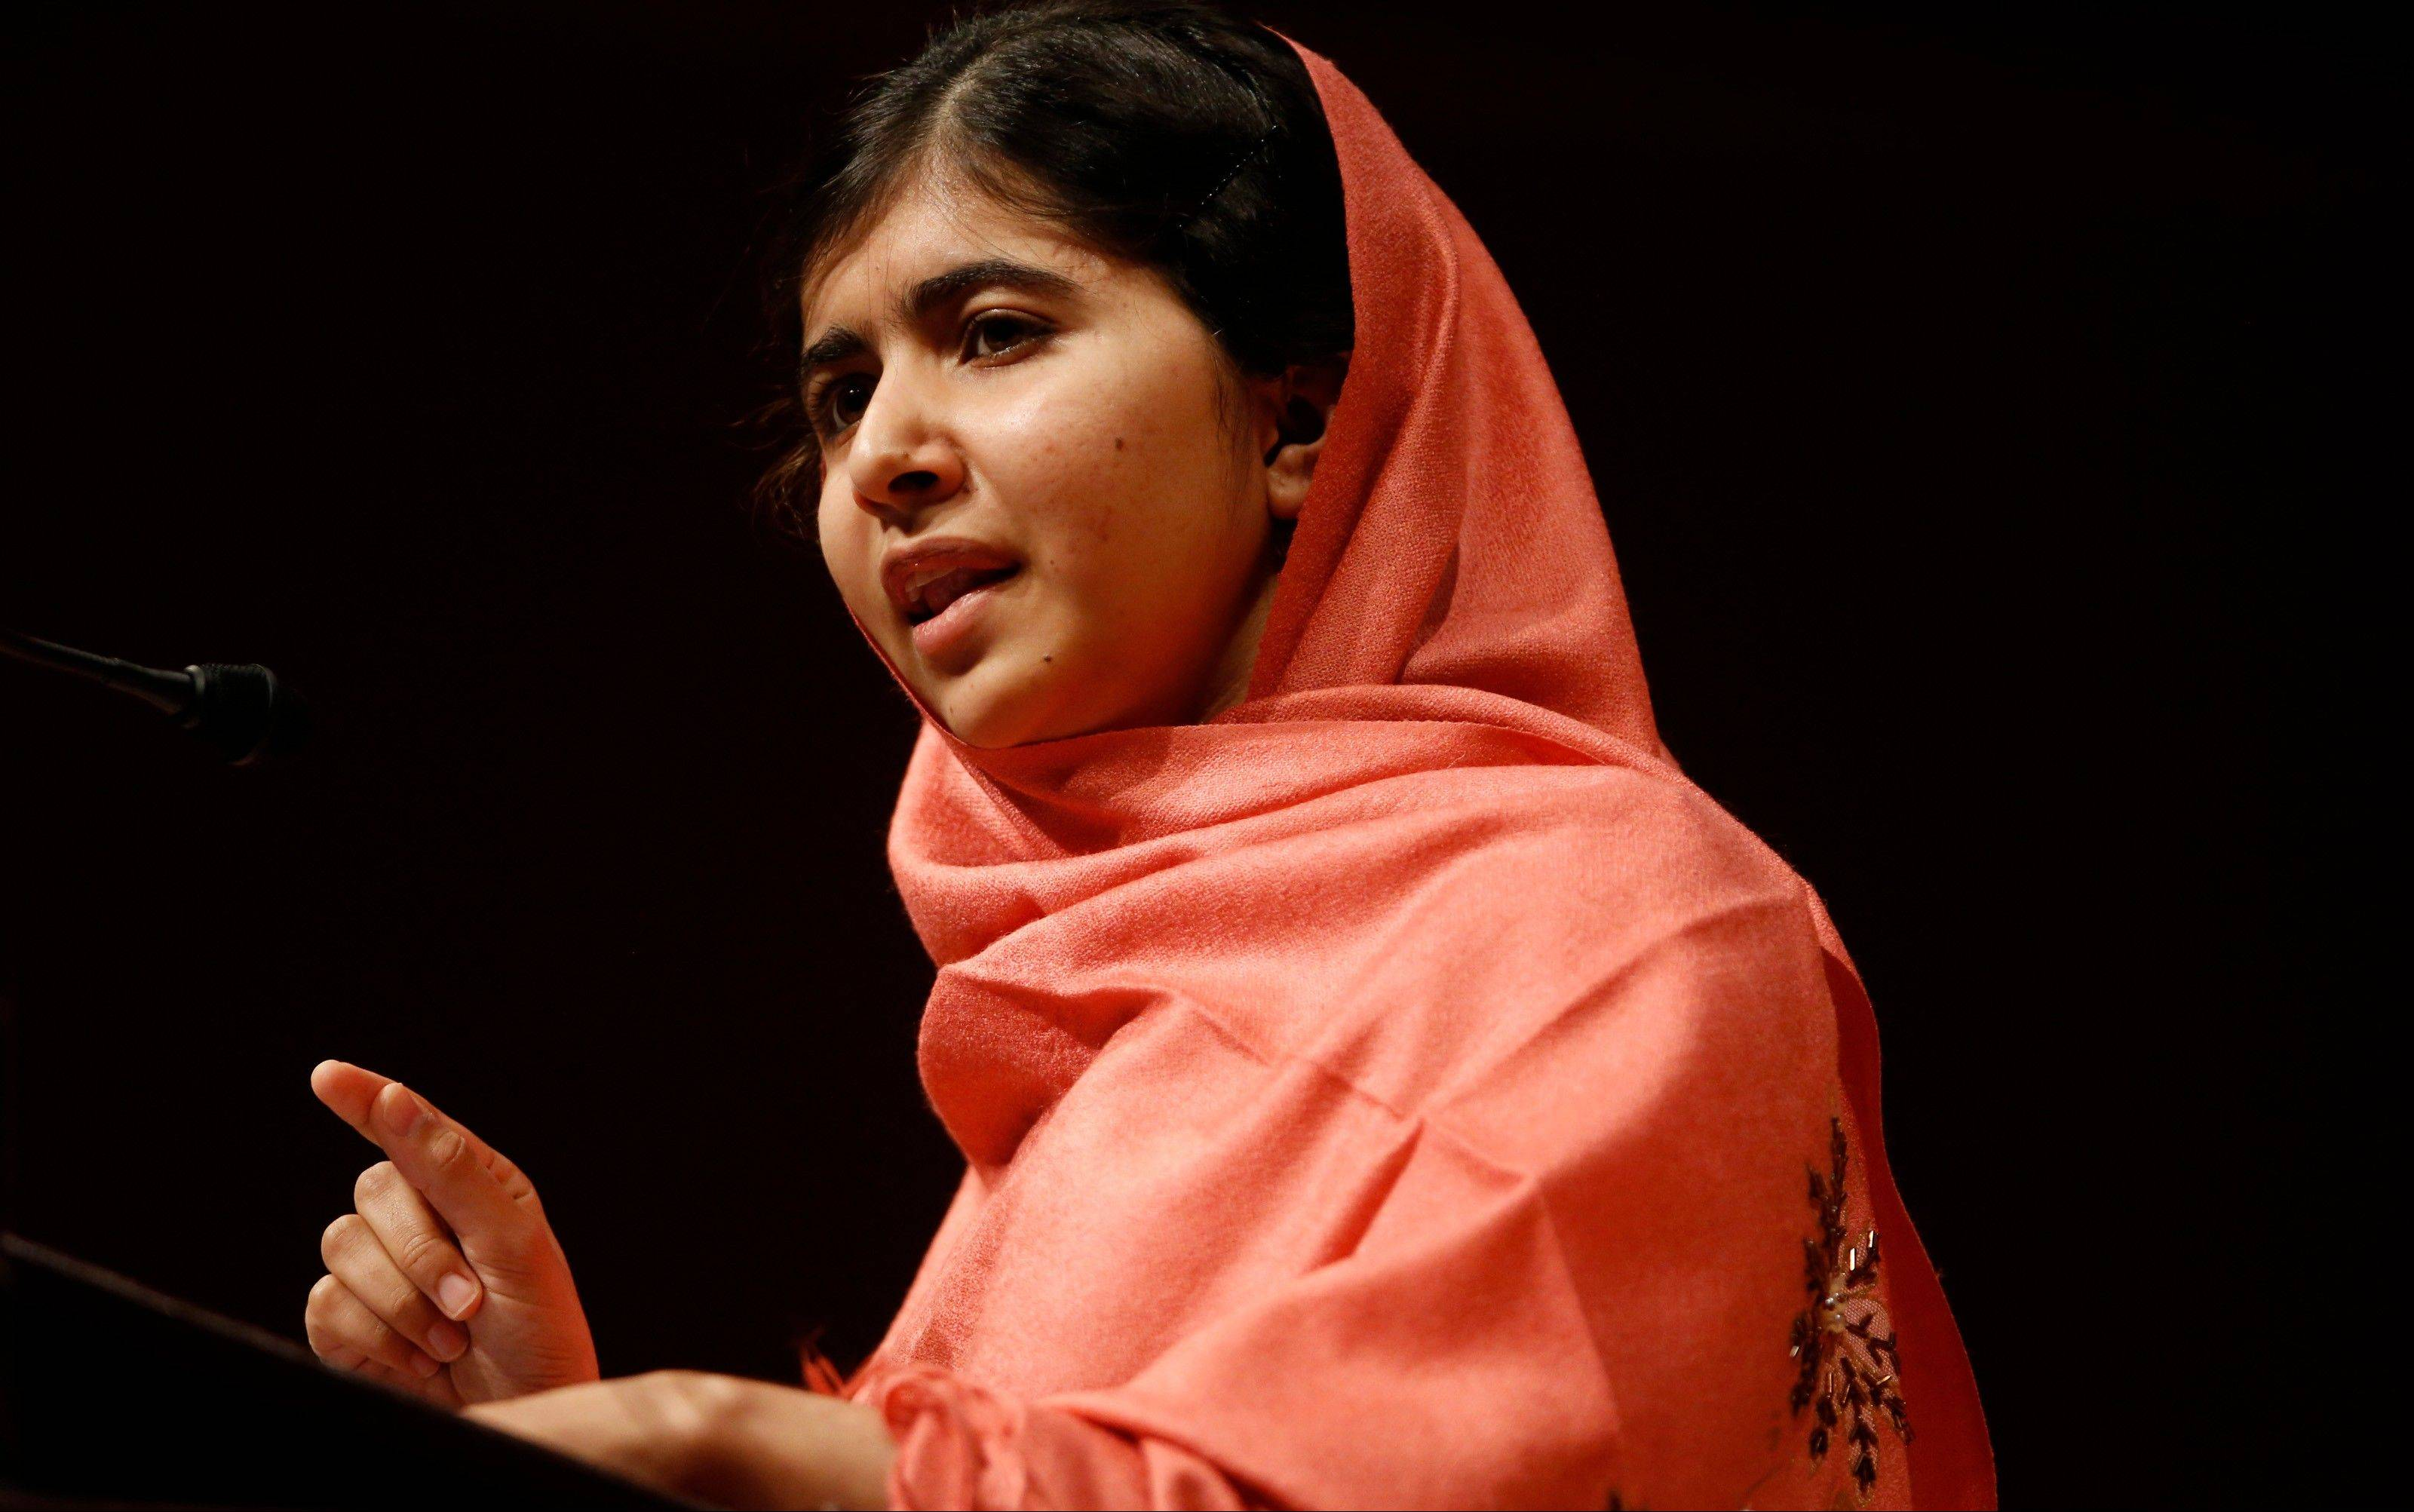 "Malala Yousafzai addresses students and faculty after receiving the 2013 Peter J. Gomes Humanitarian Award at Harvard University, on the school's campus in Cambridge, Mass. A year ago, Malala Yousafzai was a schoolgirl in northwest Pakistan, thinking about calculus and chemistry, Justin Bieber songs and ""Twilight"" movies. Today she's the world-famous survivor of a Taliban assassination attempt, an activist for girls' education -- and a contender to win the Nobel Peace Prize on Friday Oct. 11, 2013."